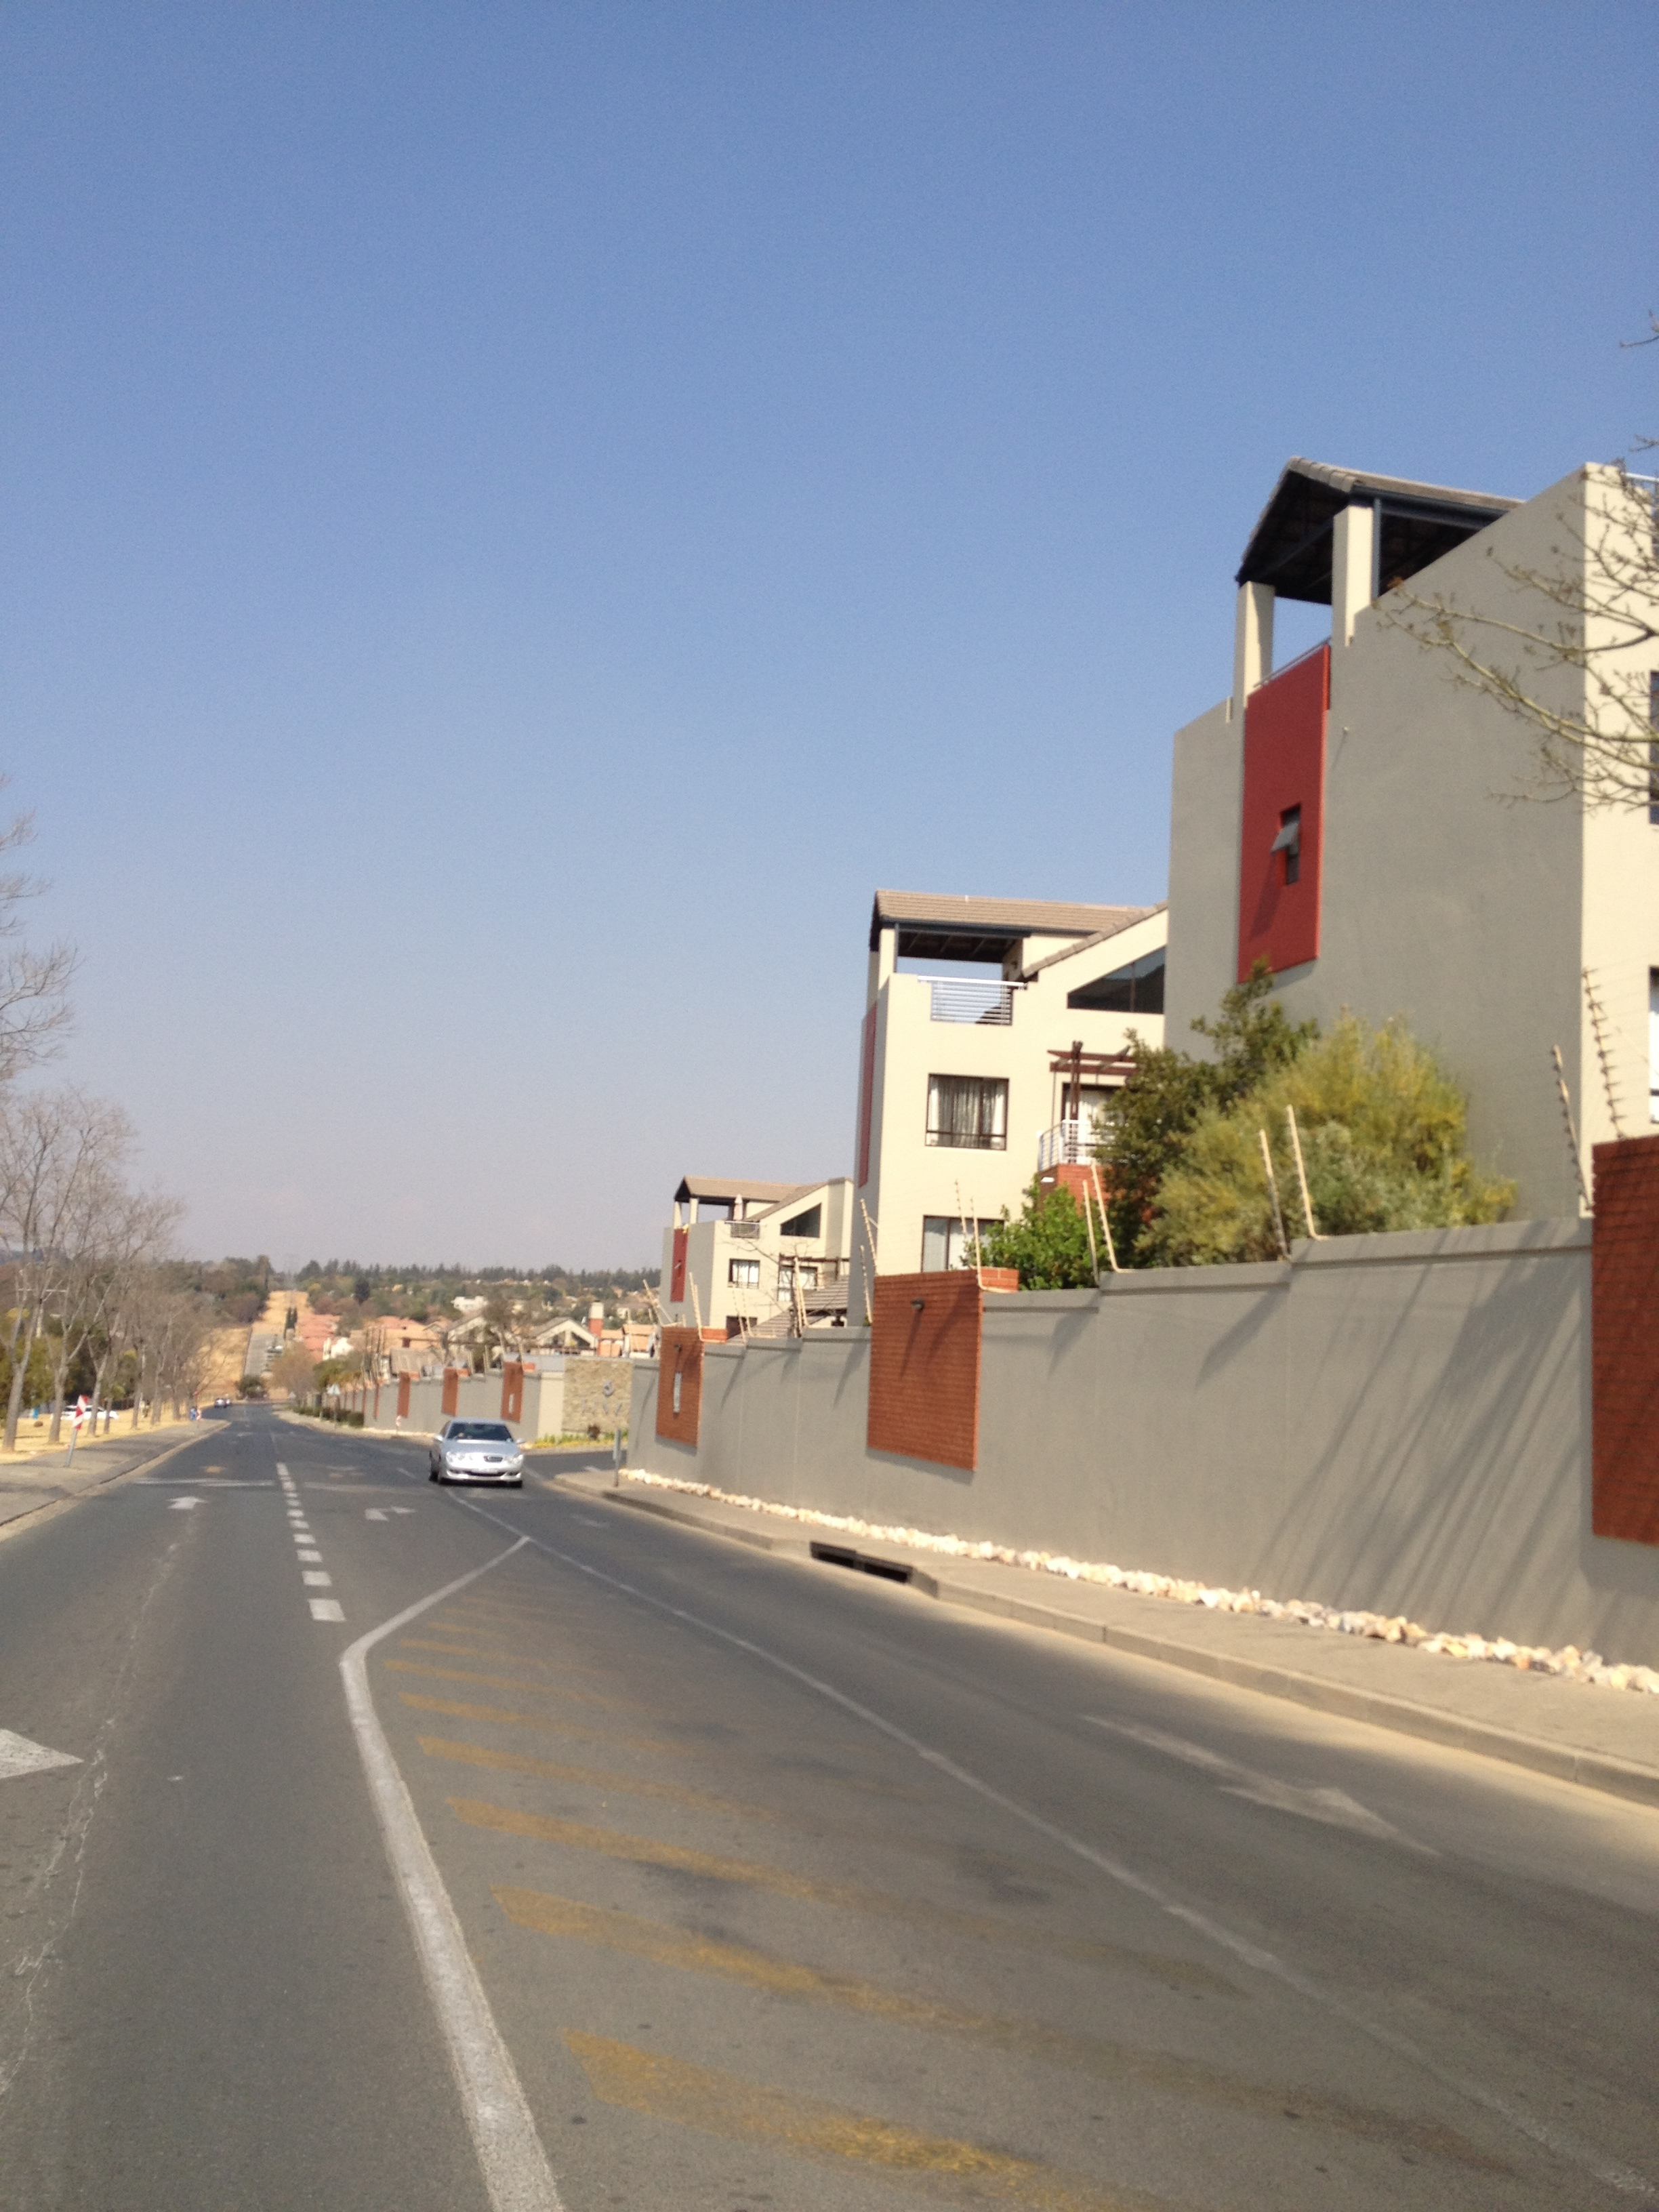 A typically suburban scene in newly-developed areas of Johannesburg, where public space functions merely as a road arterial connecting enclosed townhouse/condominium developments.